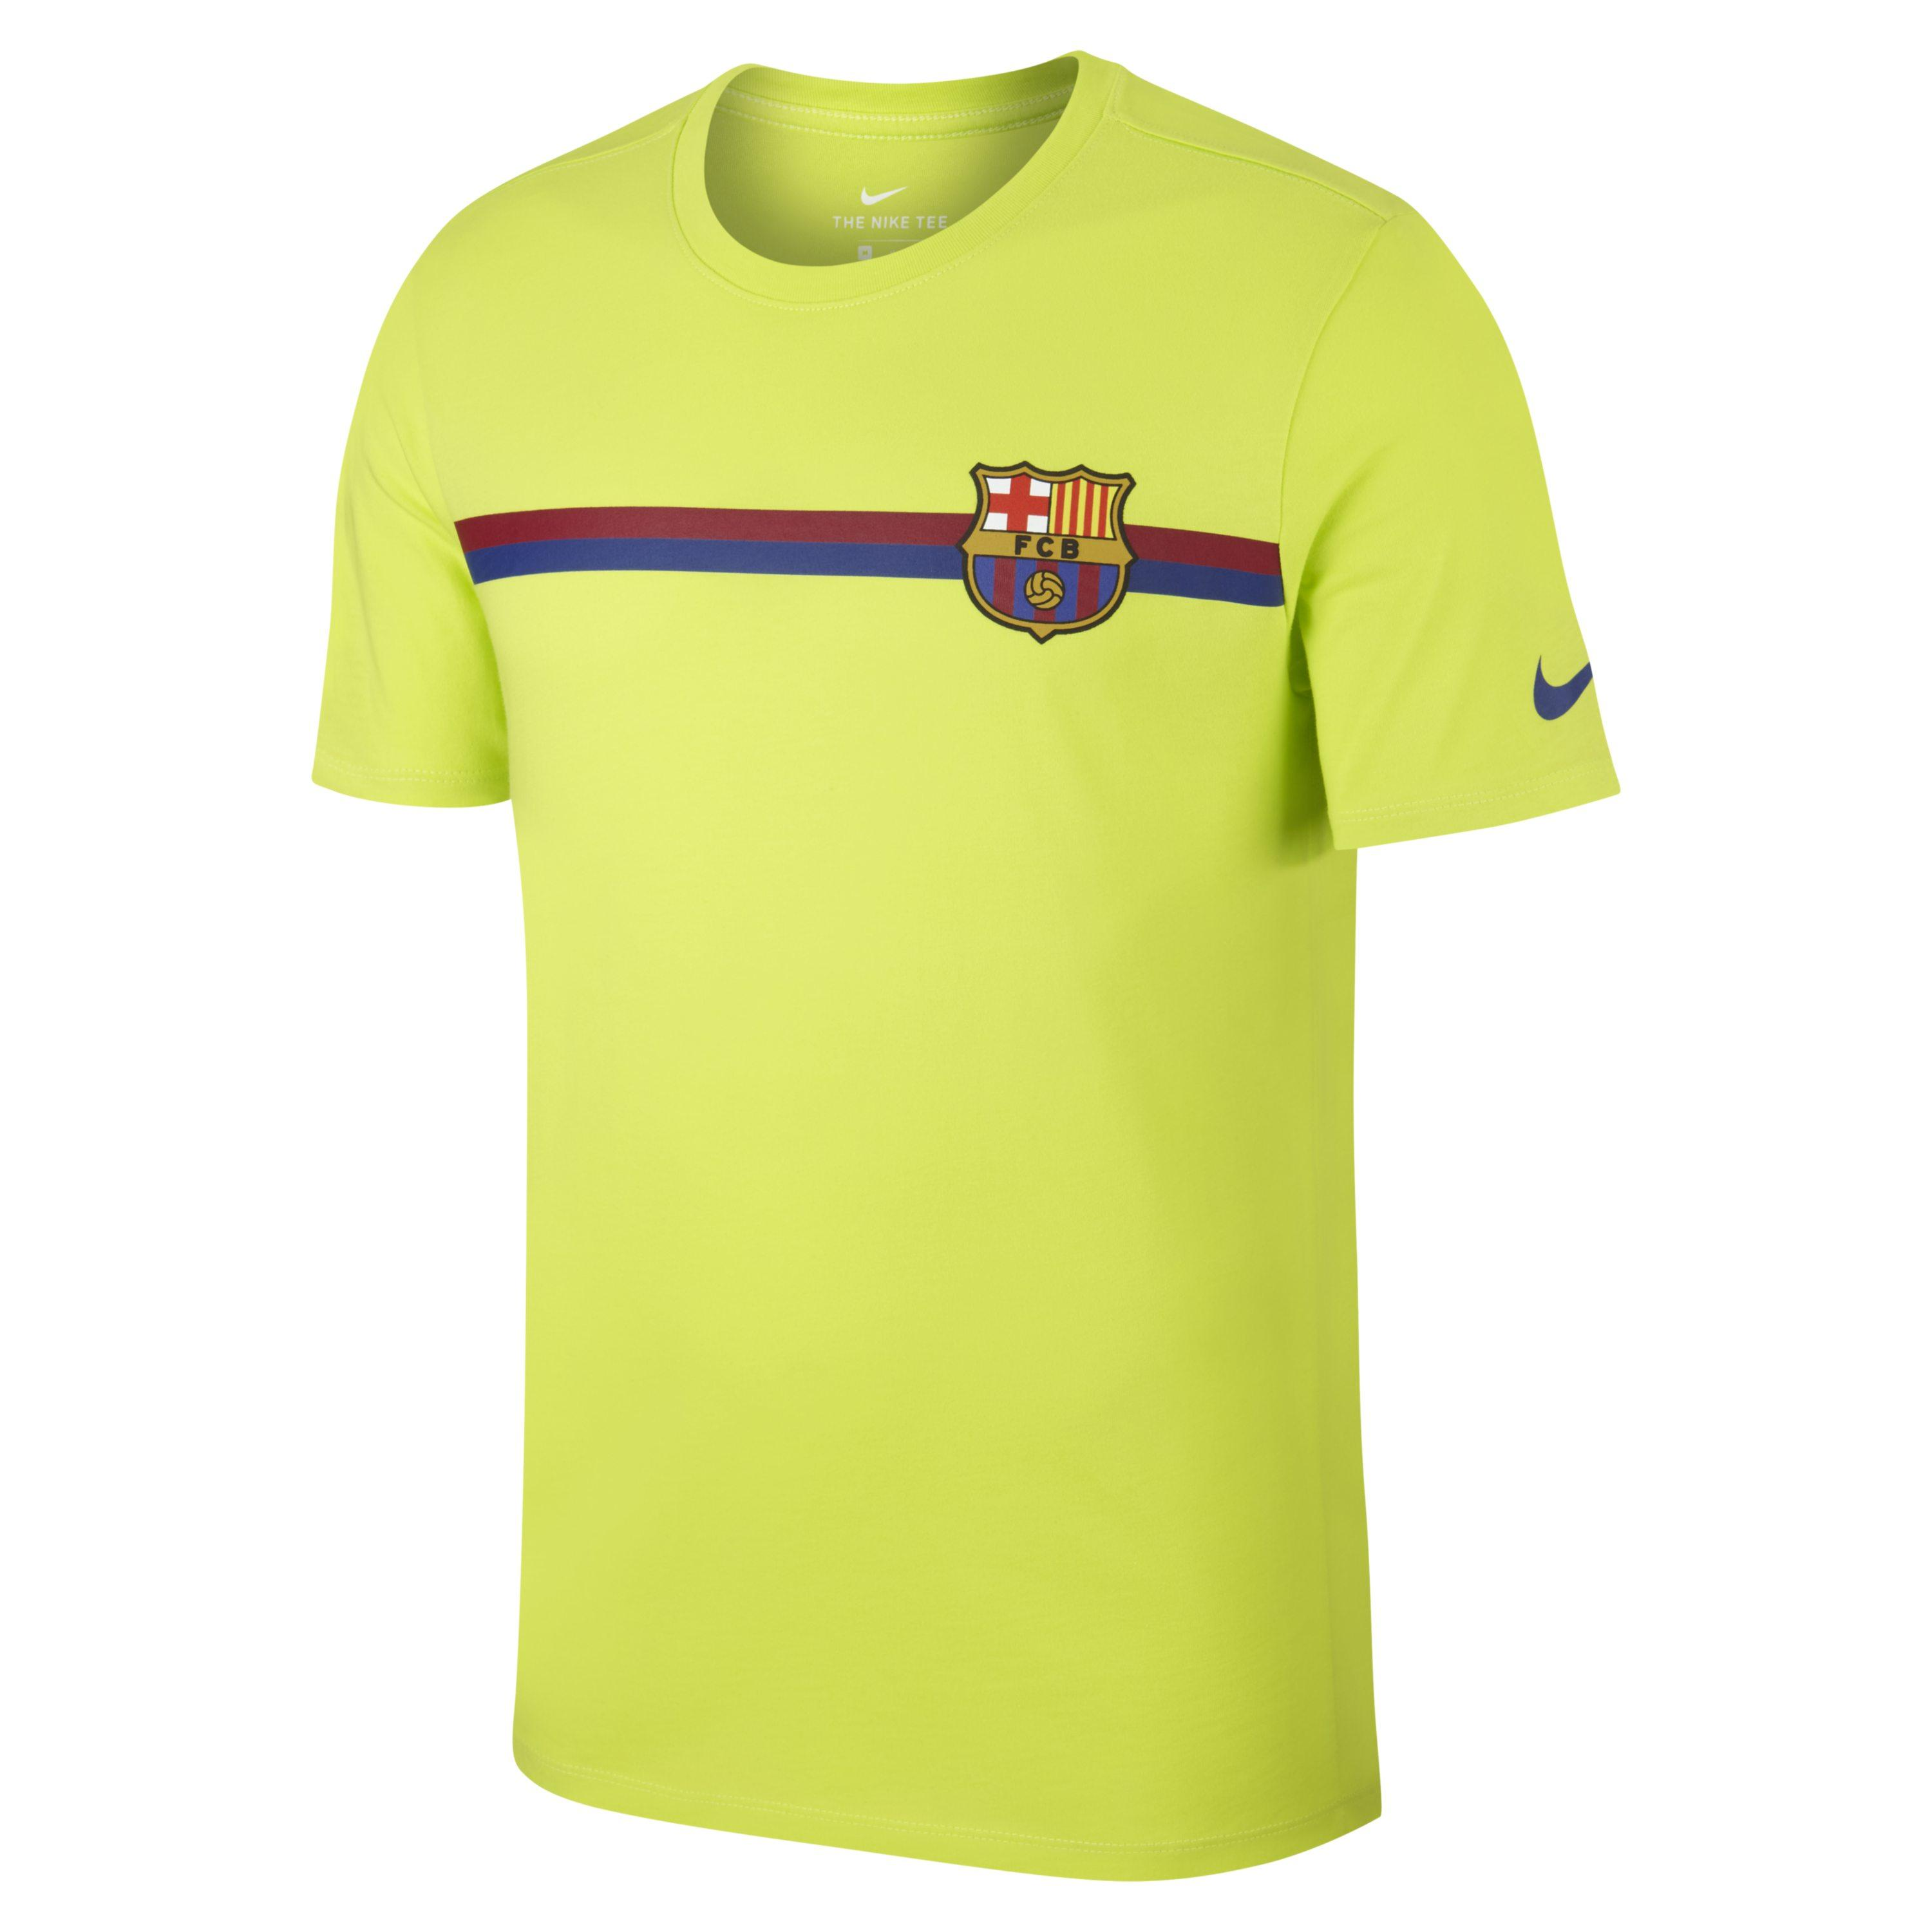 5af7f1e03ad Nike Fc Barcelona Crest T-shirt in Green for Men - Lyst